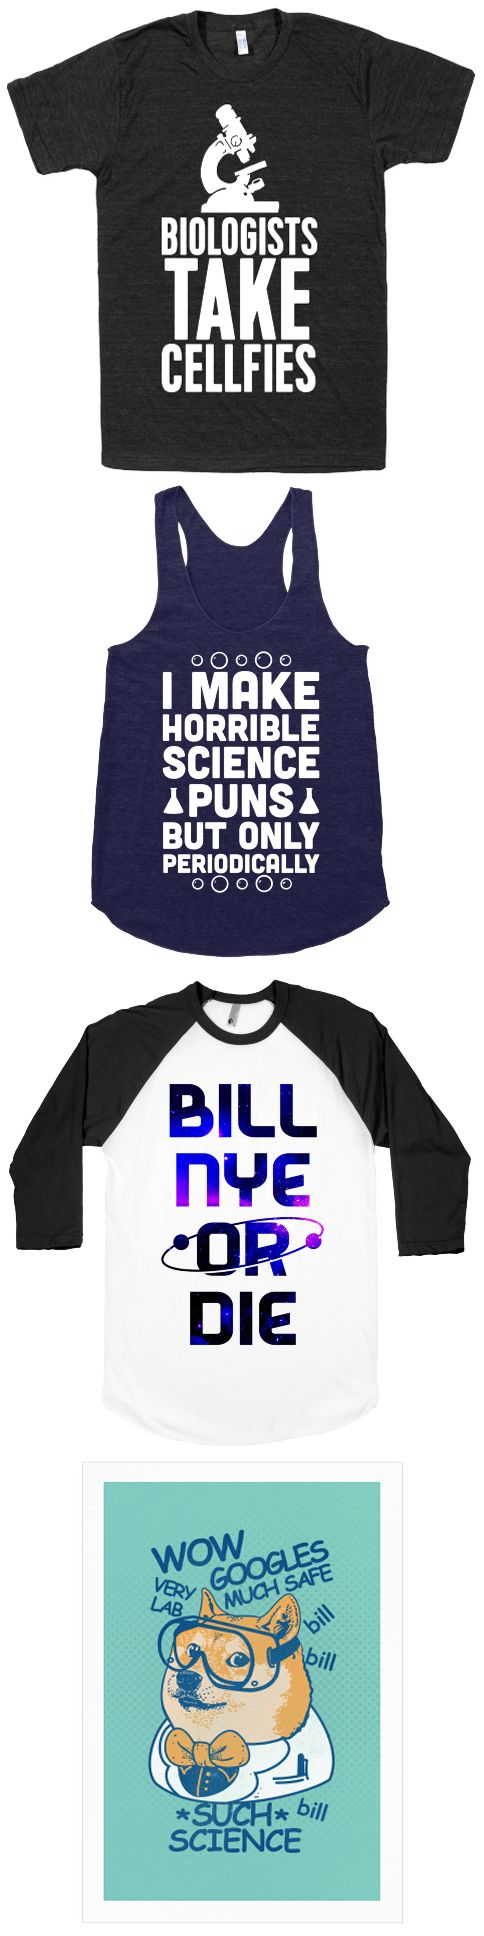 If you love everything science, this collection is for you.